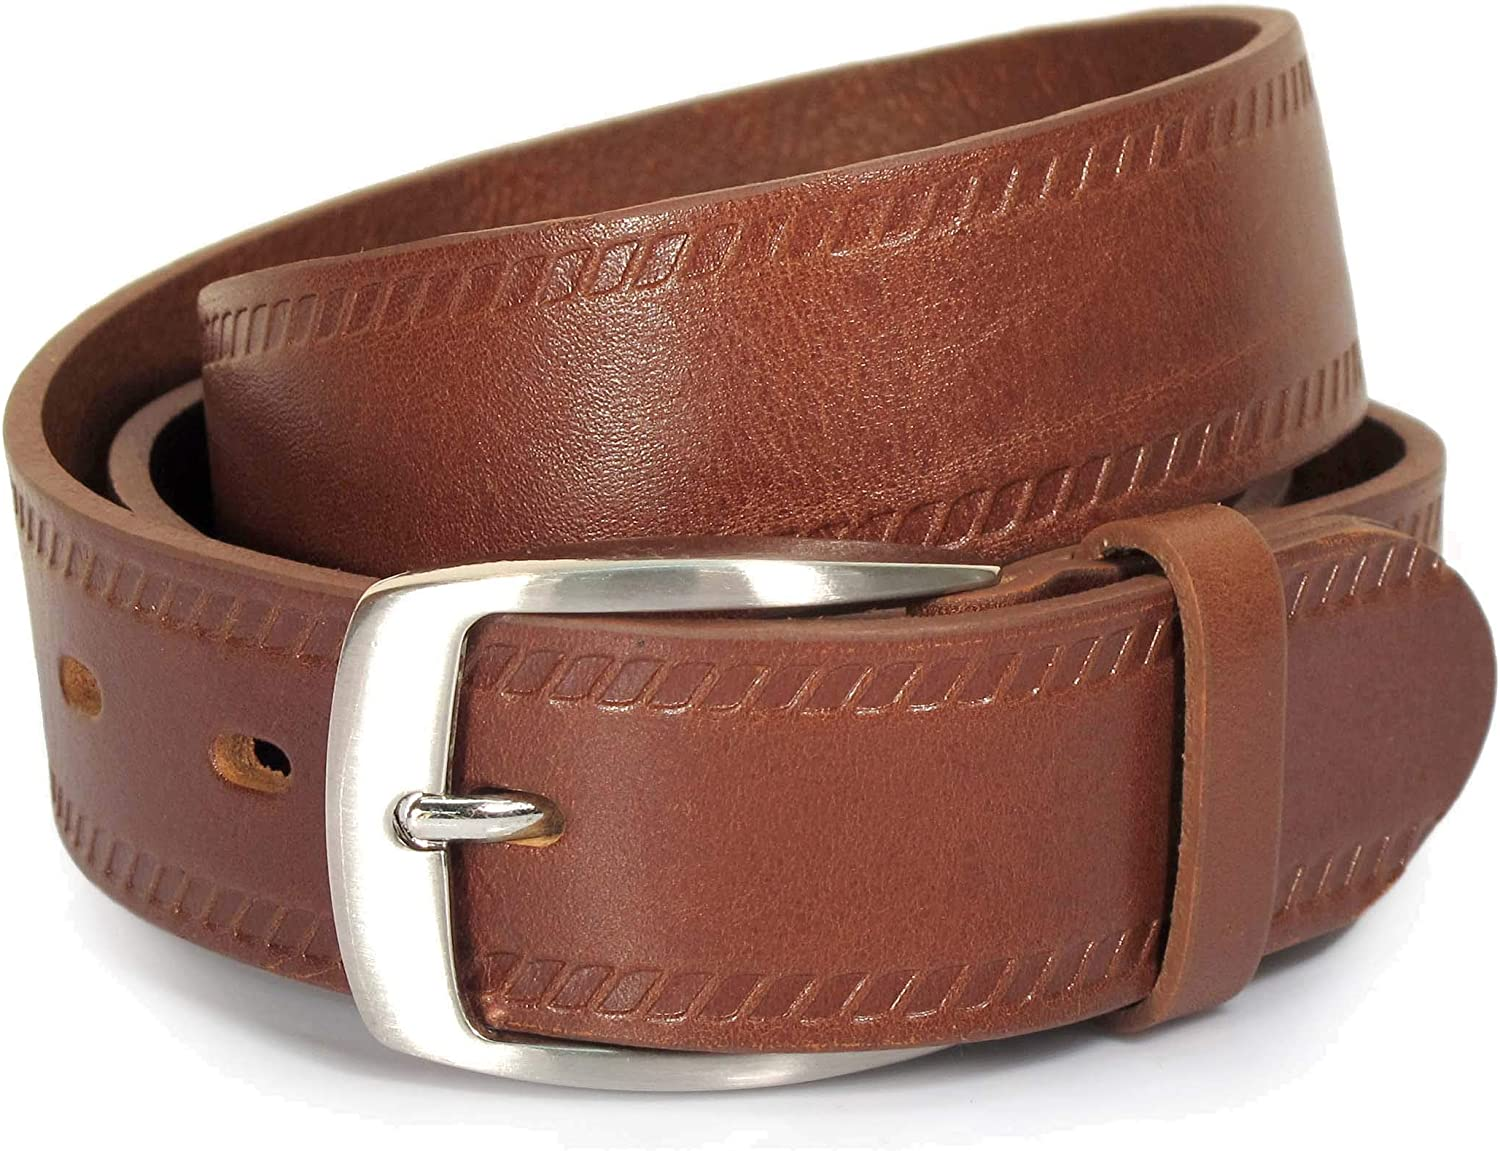 Mens Real Genuine Leather Belt Black Brown White 1.25 Wide S-XL Casual Jeans TM1